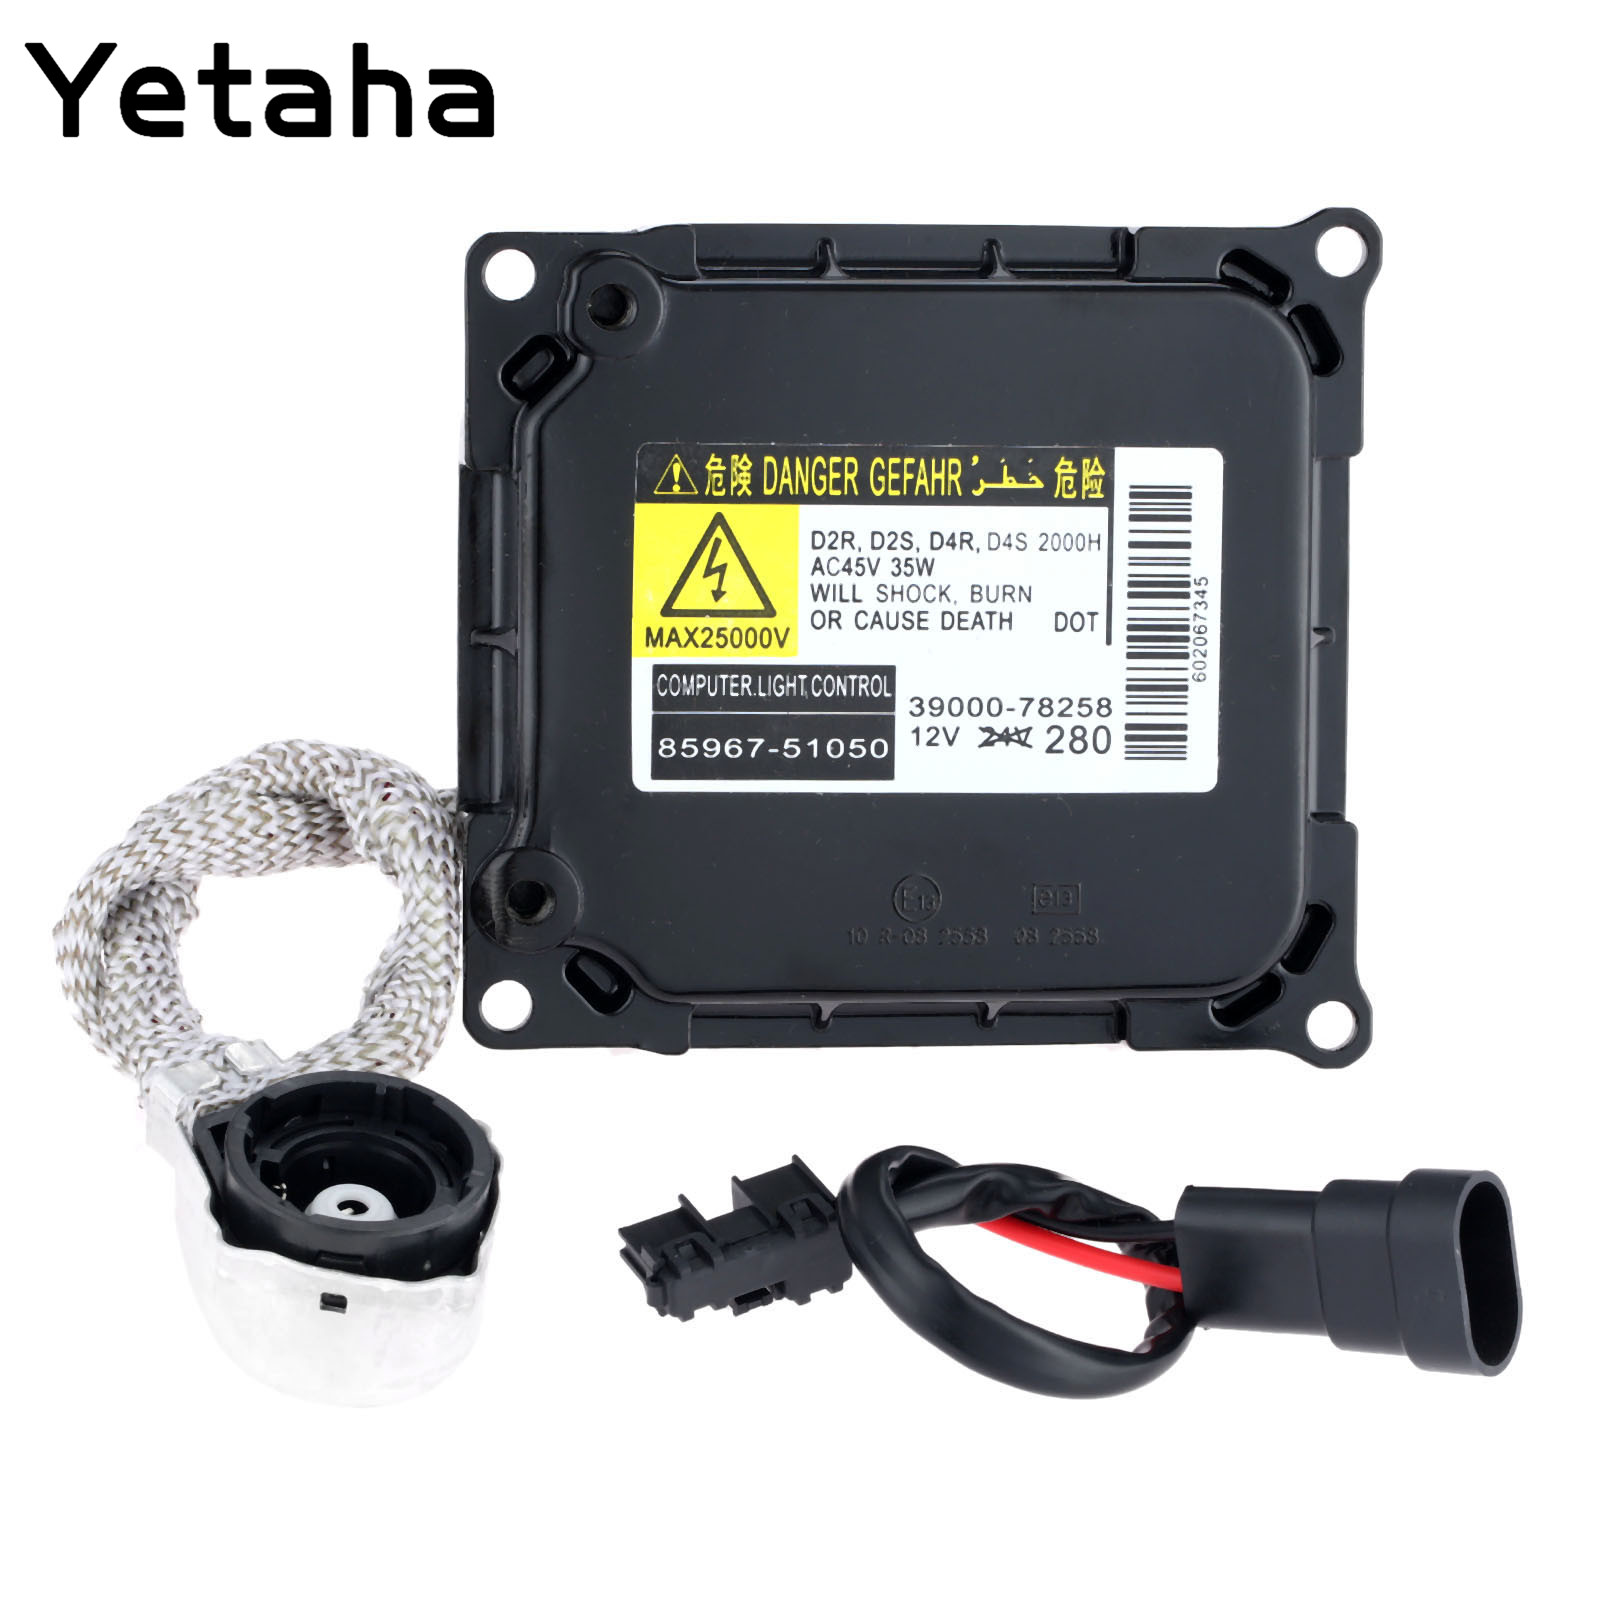 Yetaha D4S D4R HID Xenon Headlight Ballast KDLT003 DDLT003 Control Unit Module ECU Igniter for Toyota Lexus ES350 High Quality cnc3018 with er11 diy cnc engraving machine pcb milling machine wood carving machine cnc router cnc 3018 grbl best advanced toys